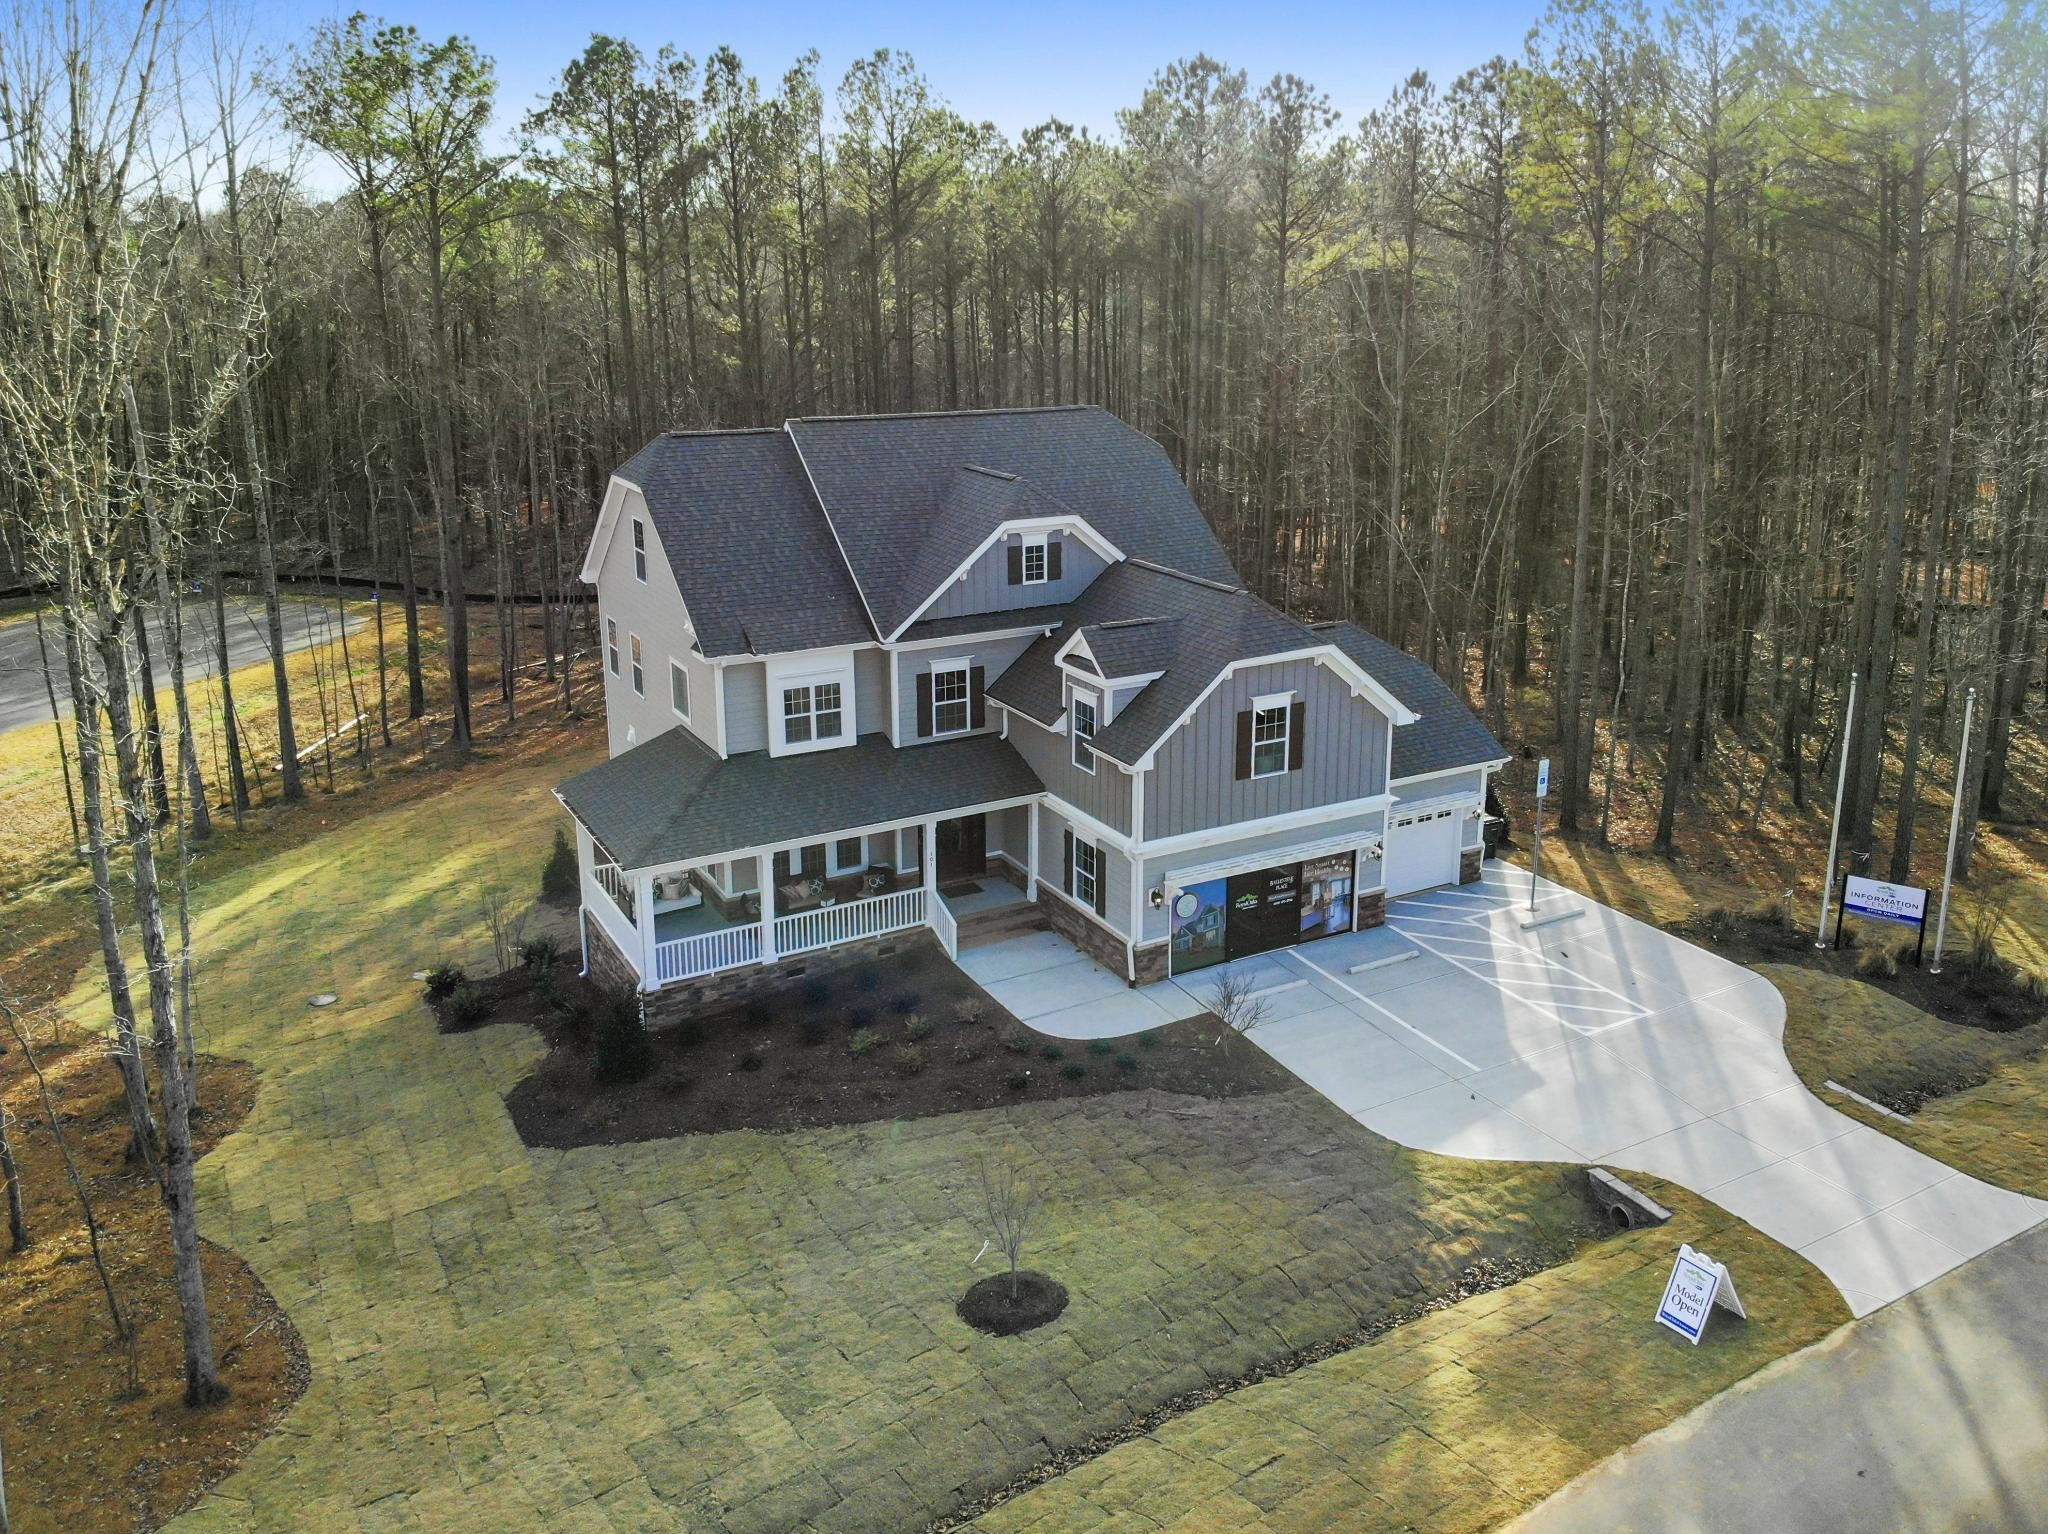 Ballentine Place, The Edenton Model, Royal Oaks a Division of Mattamy Homes, Spacious Wooded Home...